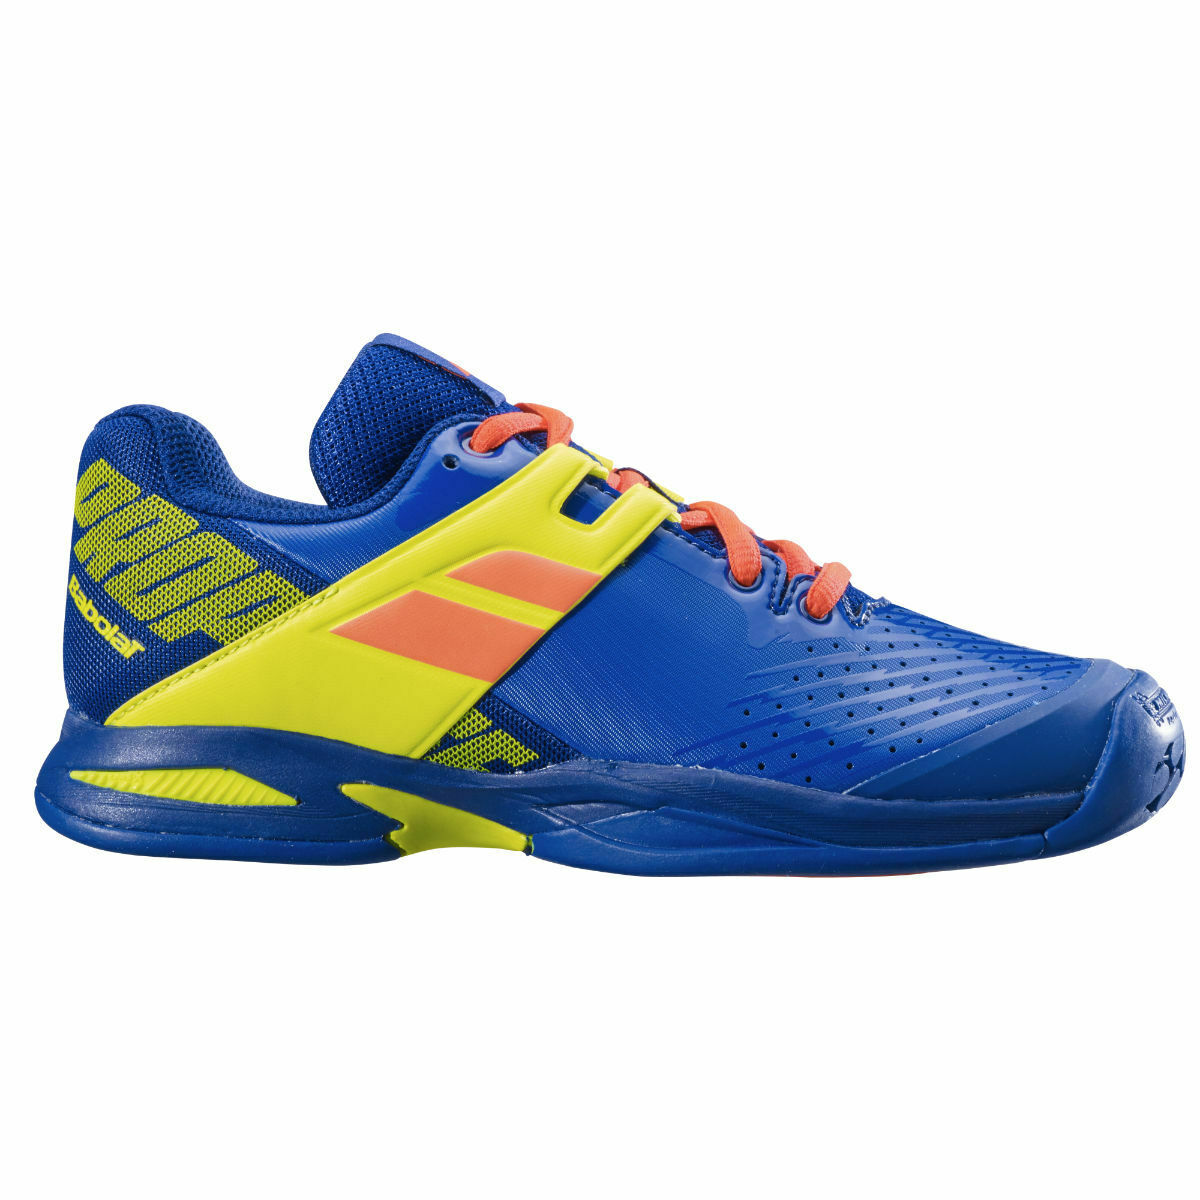 Buy Babolat propulse AC youth tennis shoes blue yellow